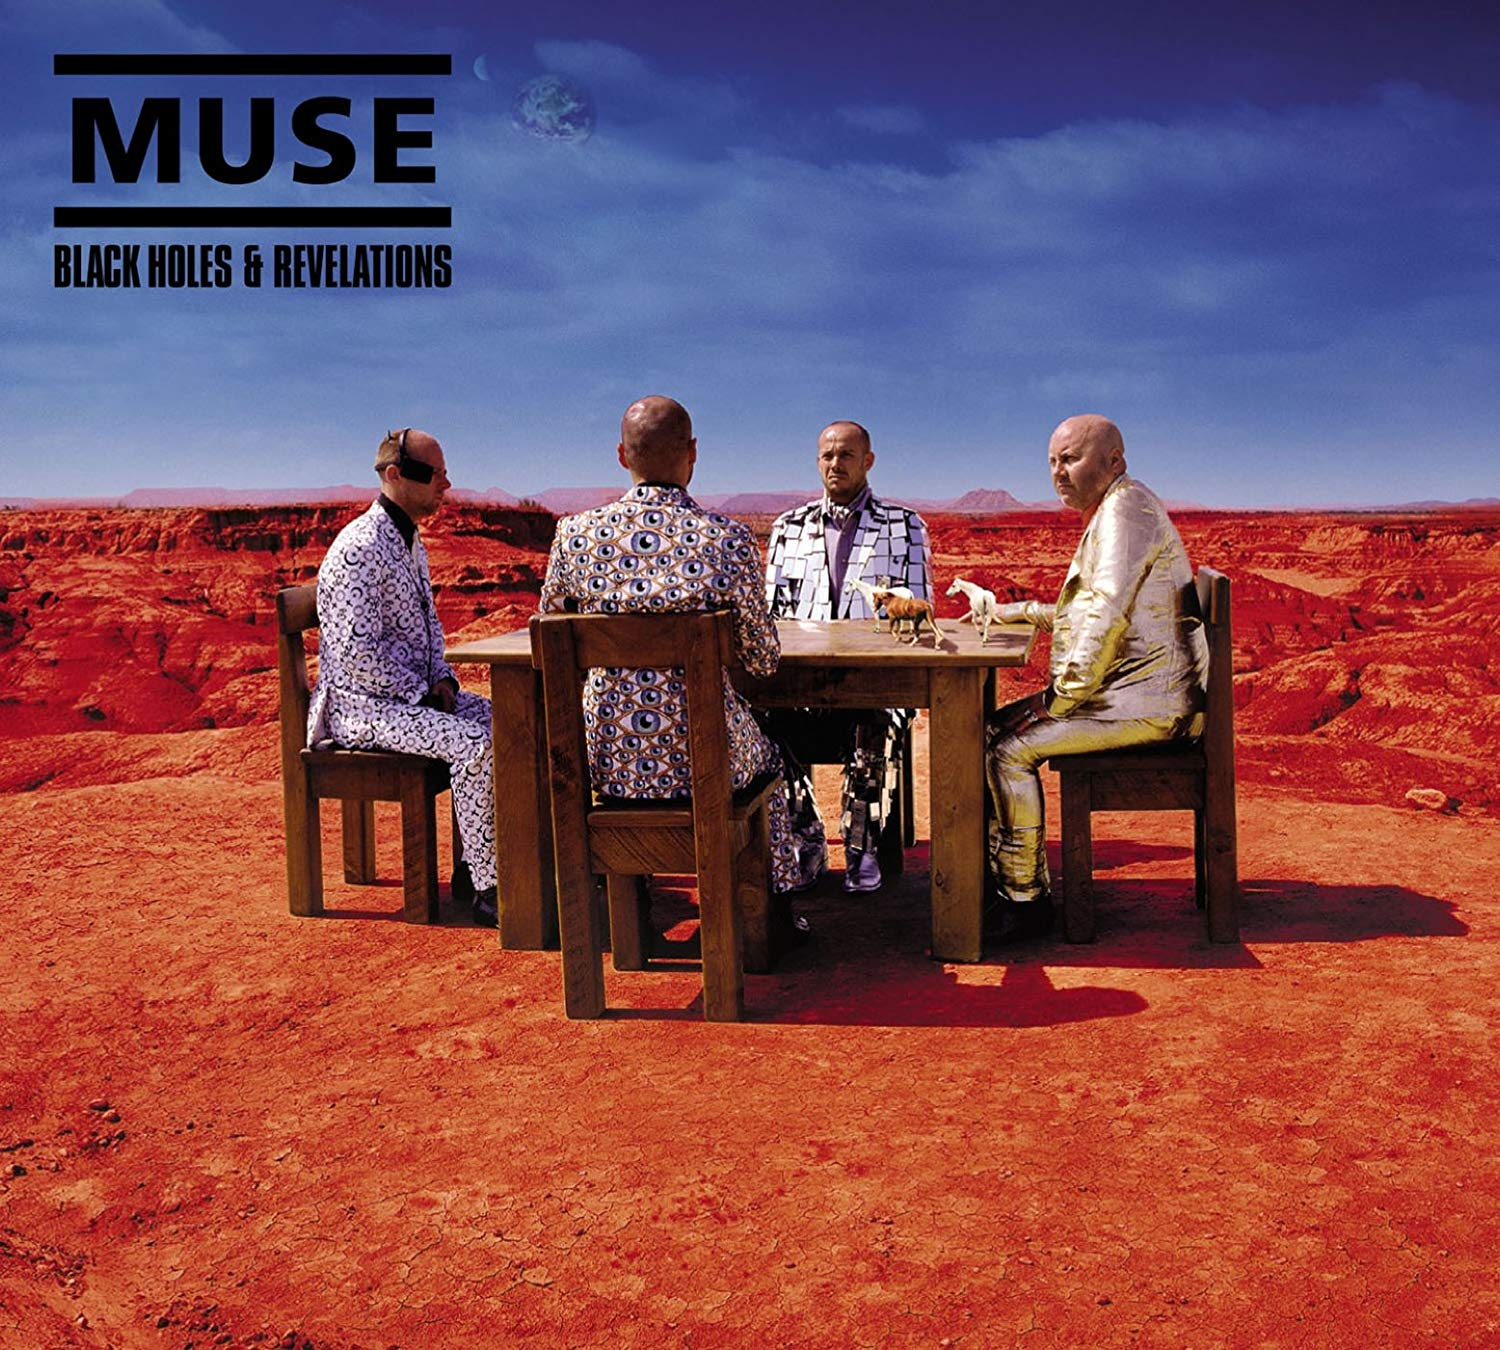 Muse — Black Holes and Revelations [Warner Bros. Records, Helium 3][25646 3509-2, HEL3002CDX](2006)